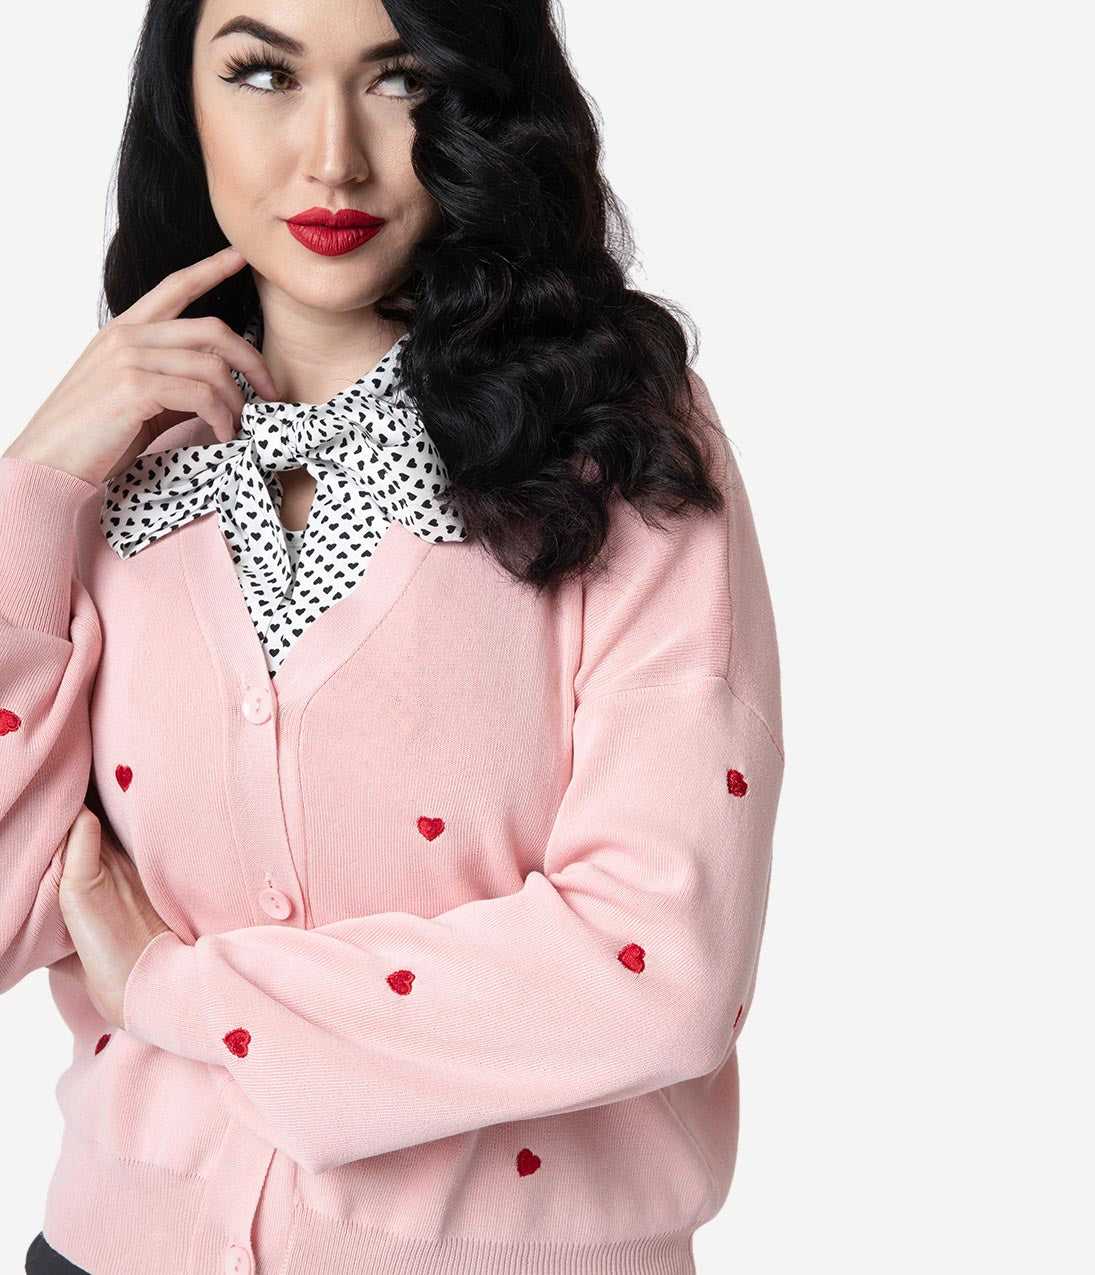 Vintage Christmas Dress | Party Dresses | Night Out Outfits Light Pink  Red Embroidered Heart Long Sleeved Knit Cardigan $52.00 AT vintagedancer.com